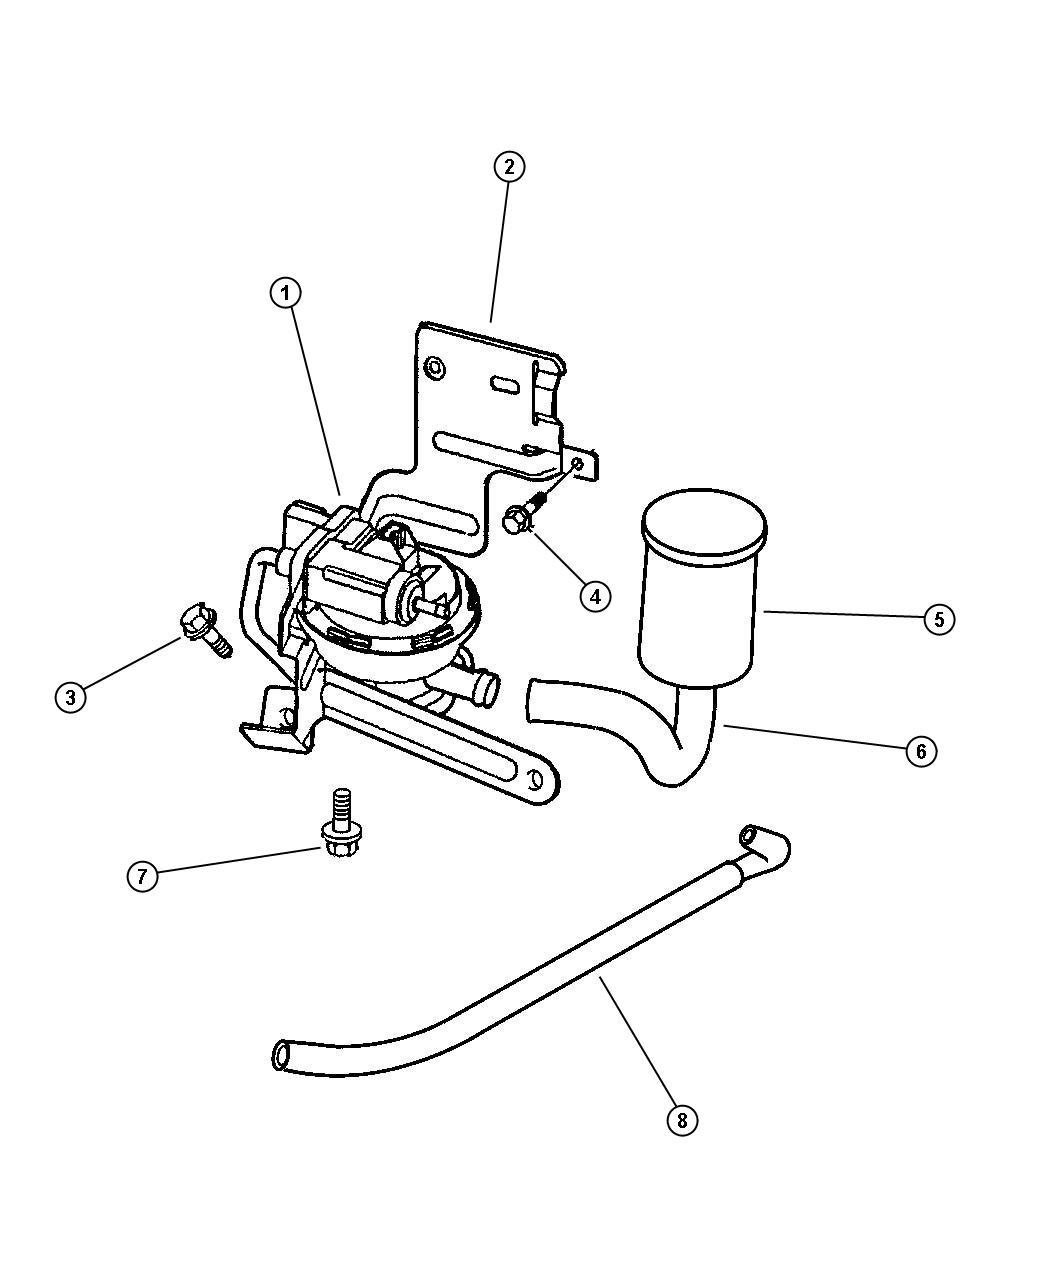 Jeep Wrangler Hose Leak Detection Pump To Canister